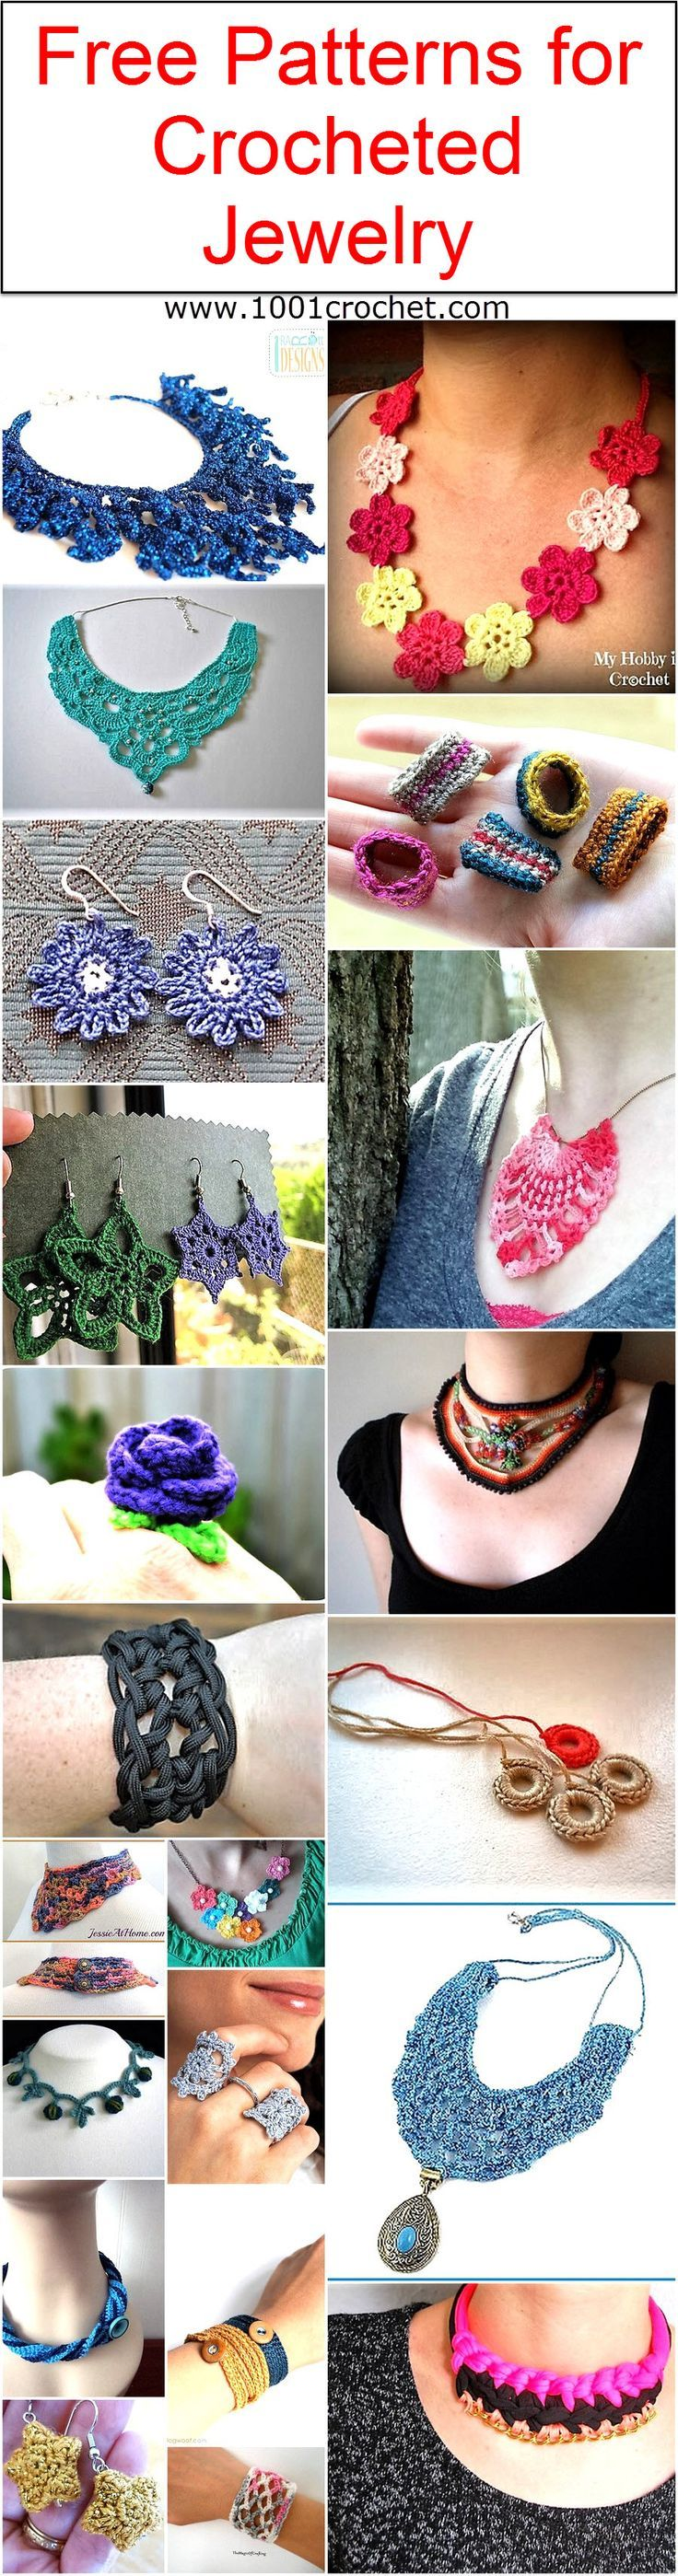 Free patterns for crocheted jewelry free pattern free bankloansurffo Images